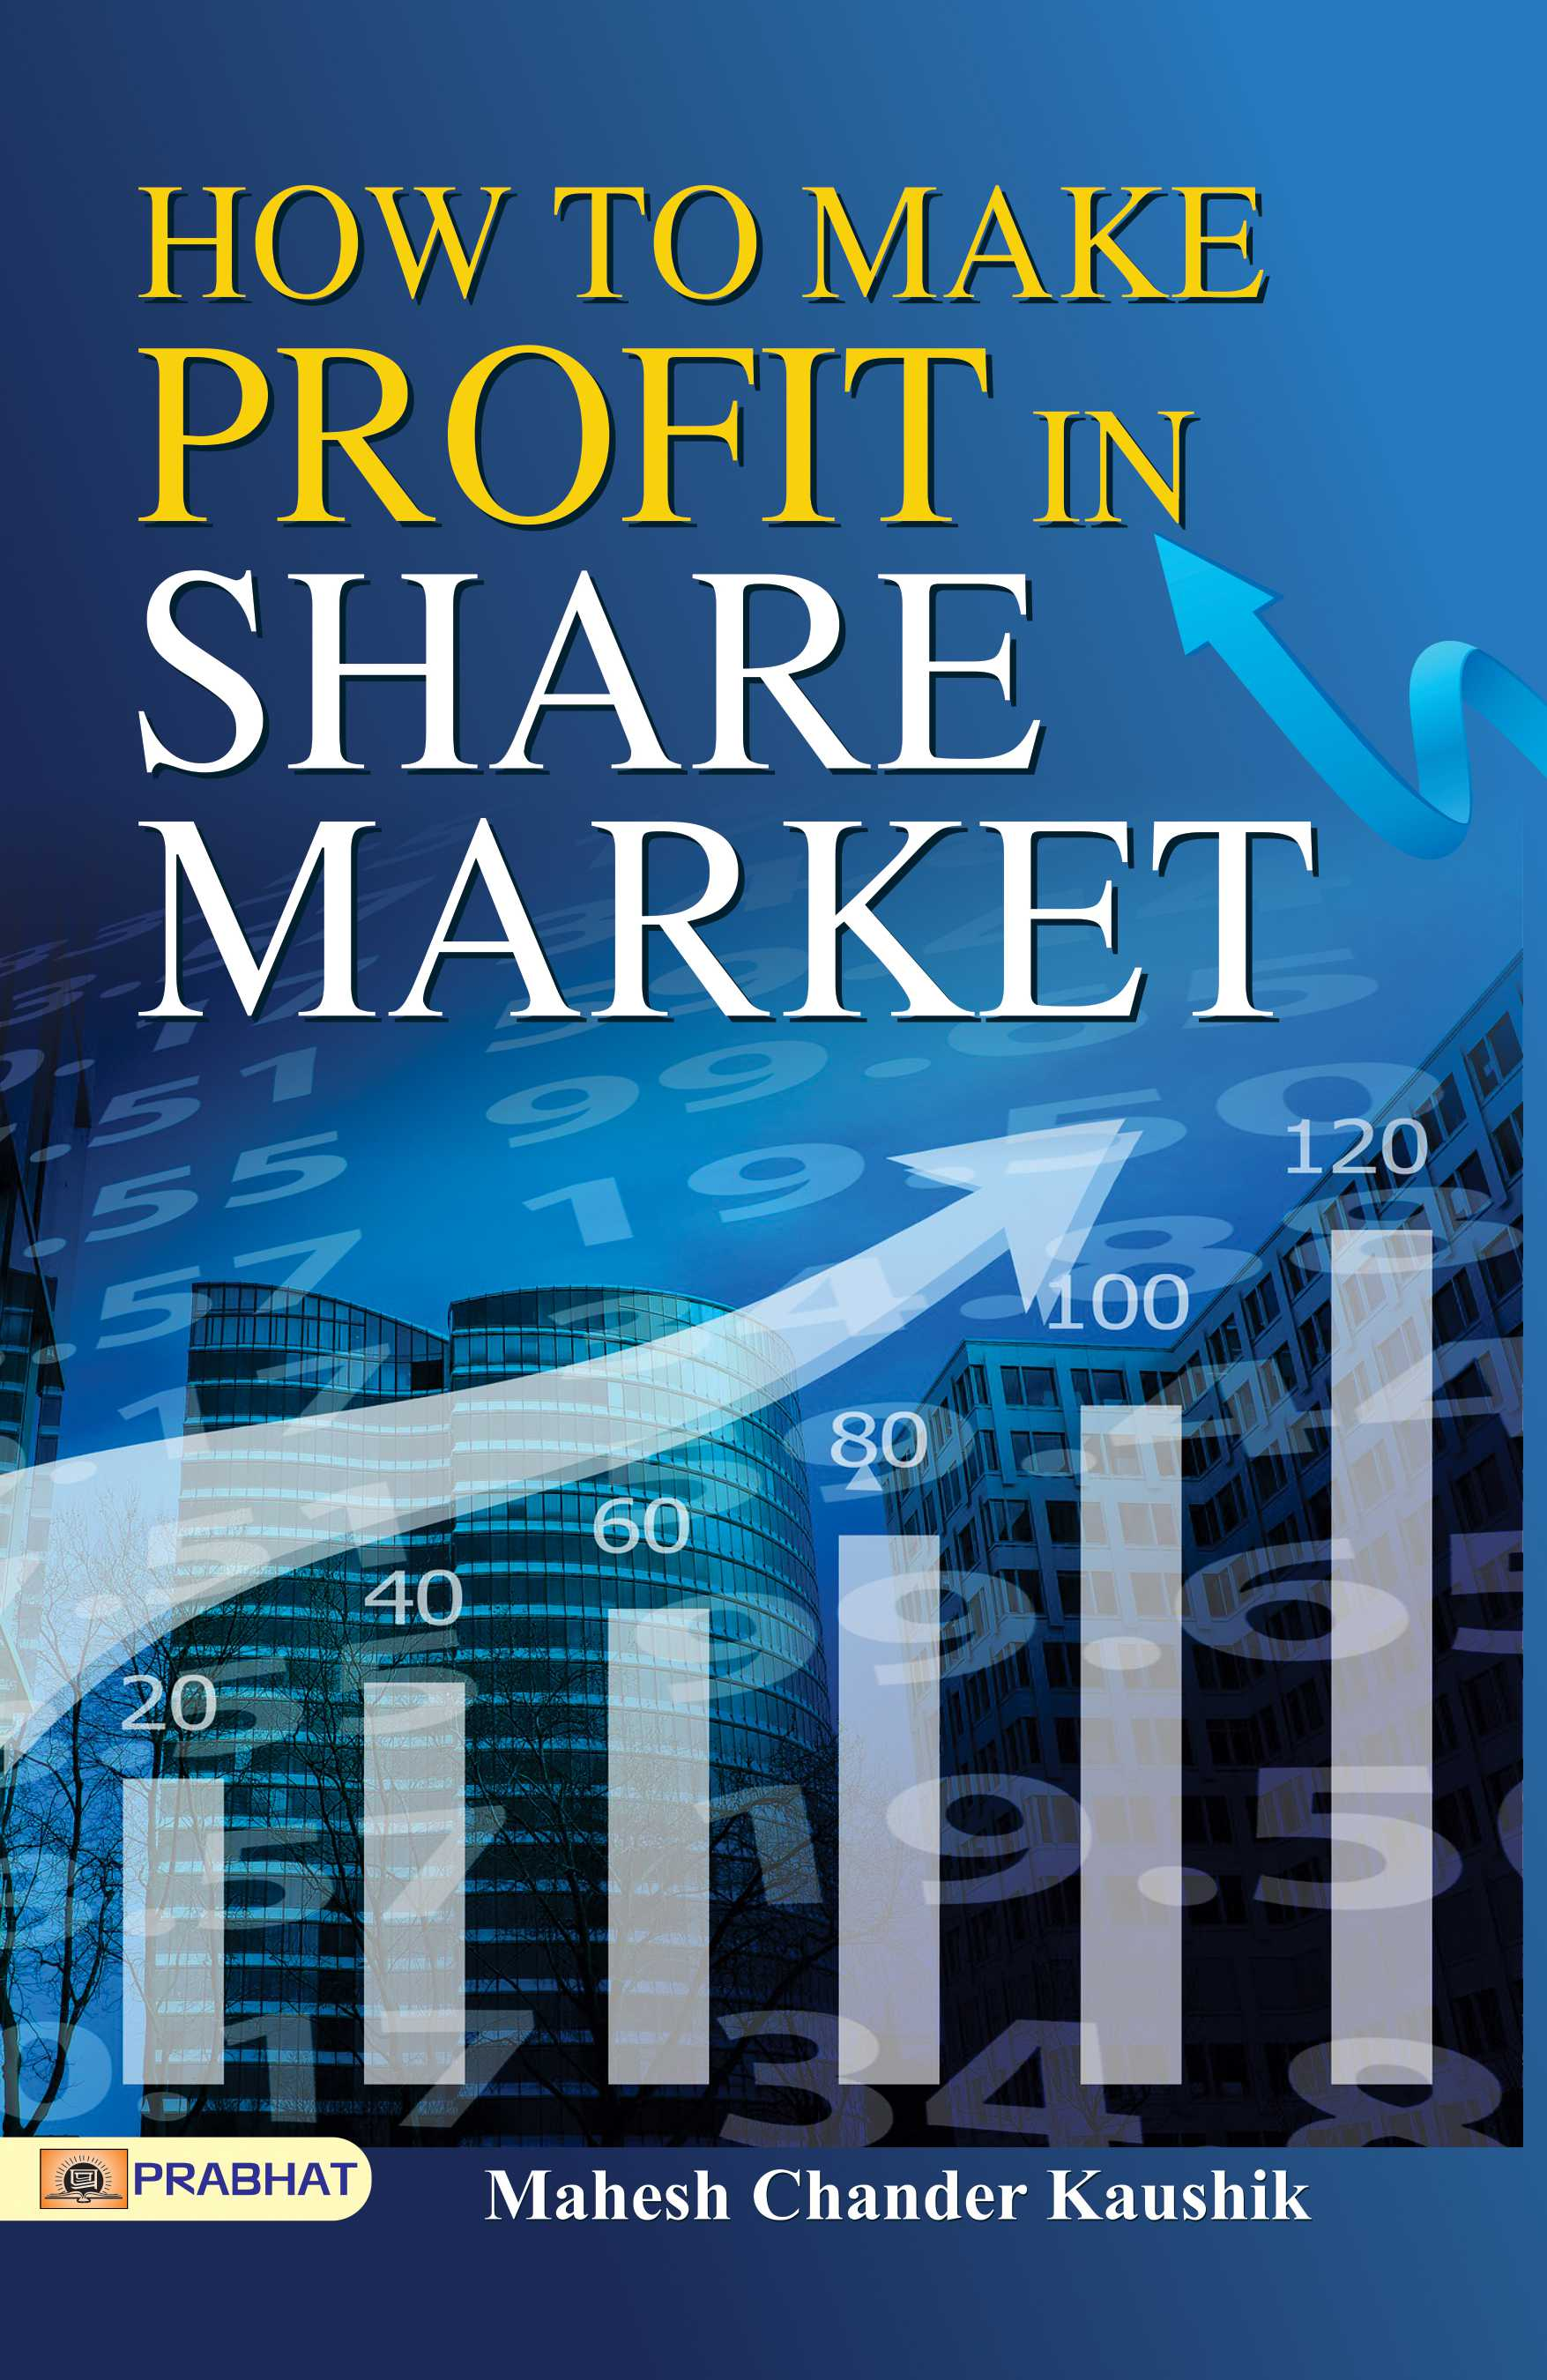 How to Make Profit in Share Market